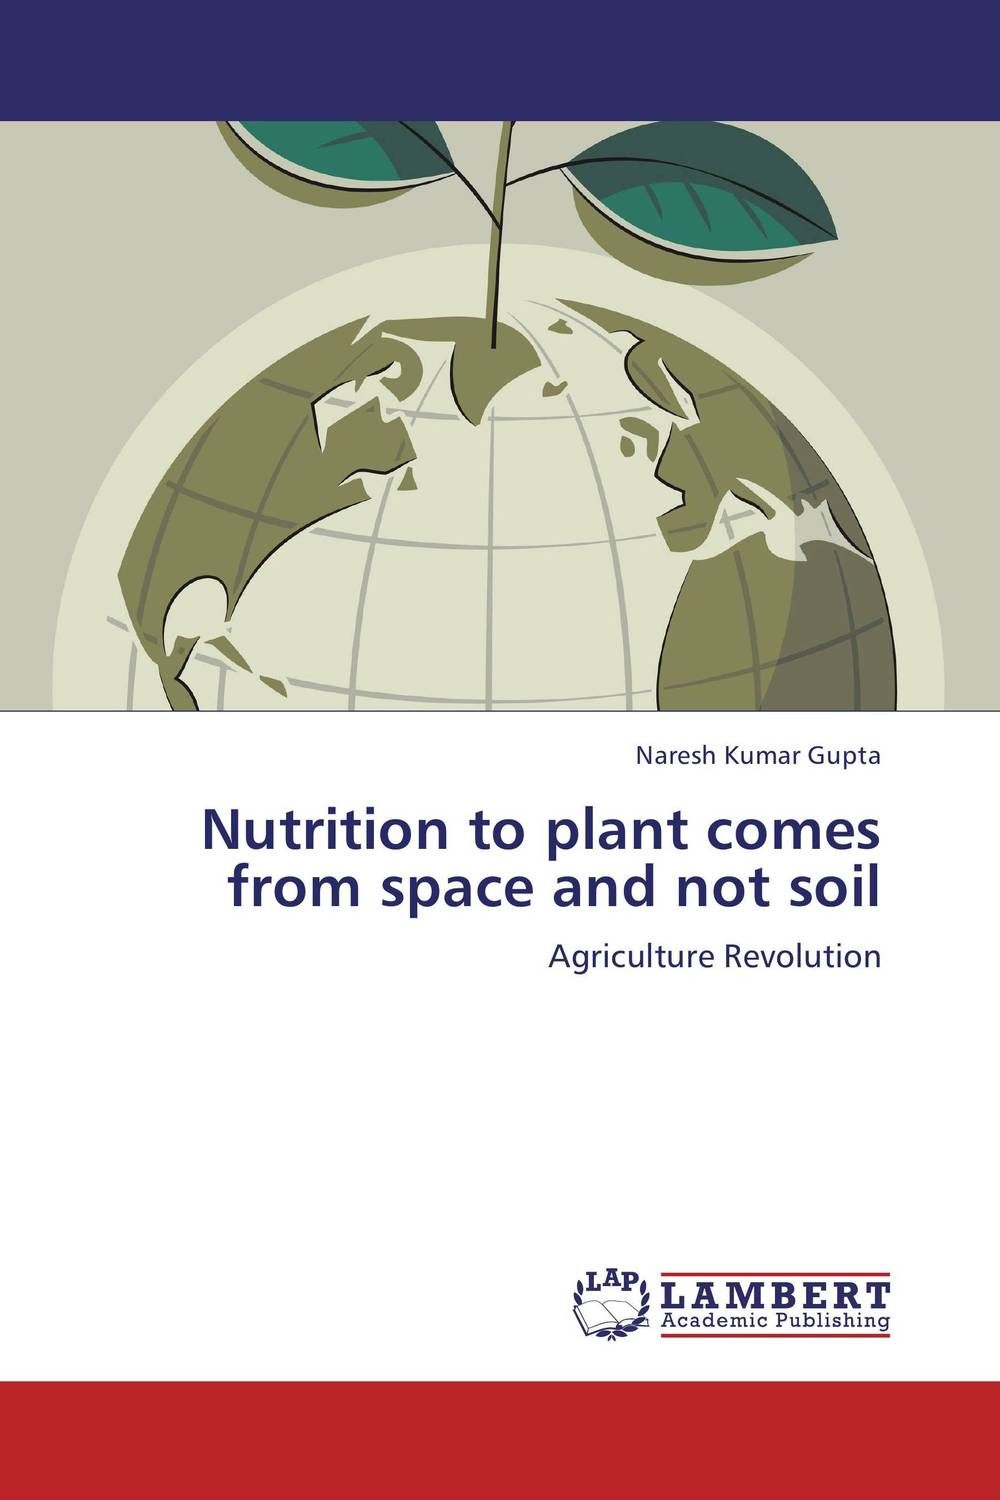 Nutrition to plant comes from space and not soil farmers response to integrated plant nutrition system